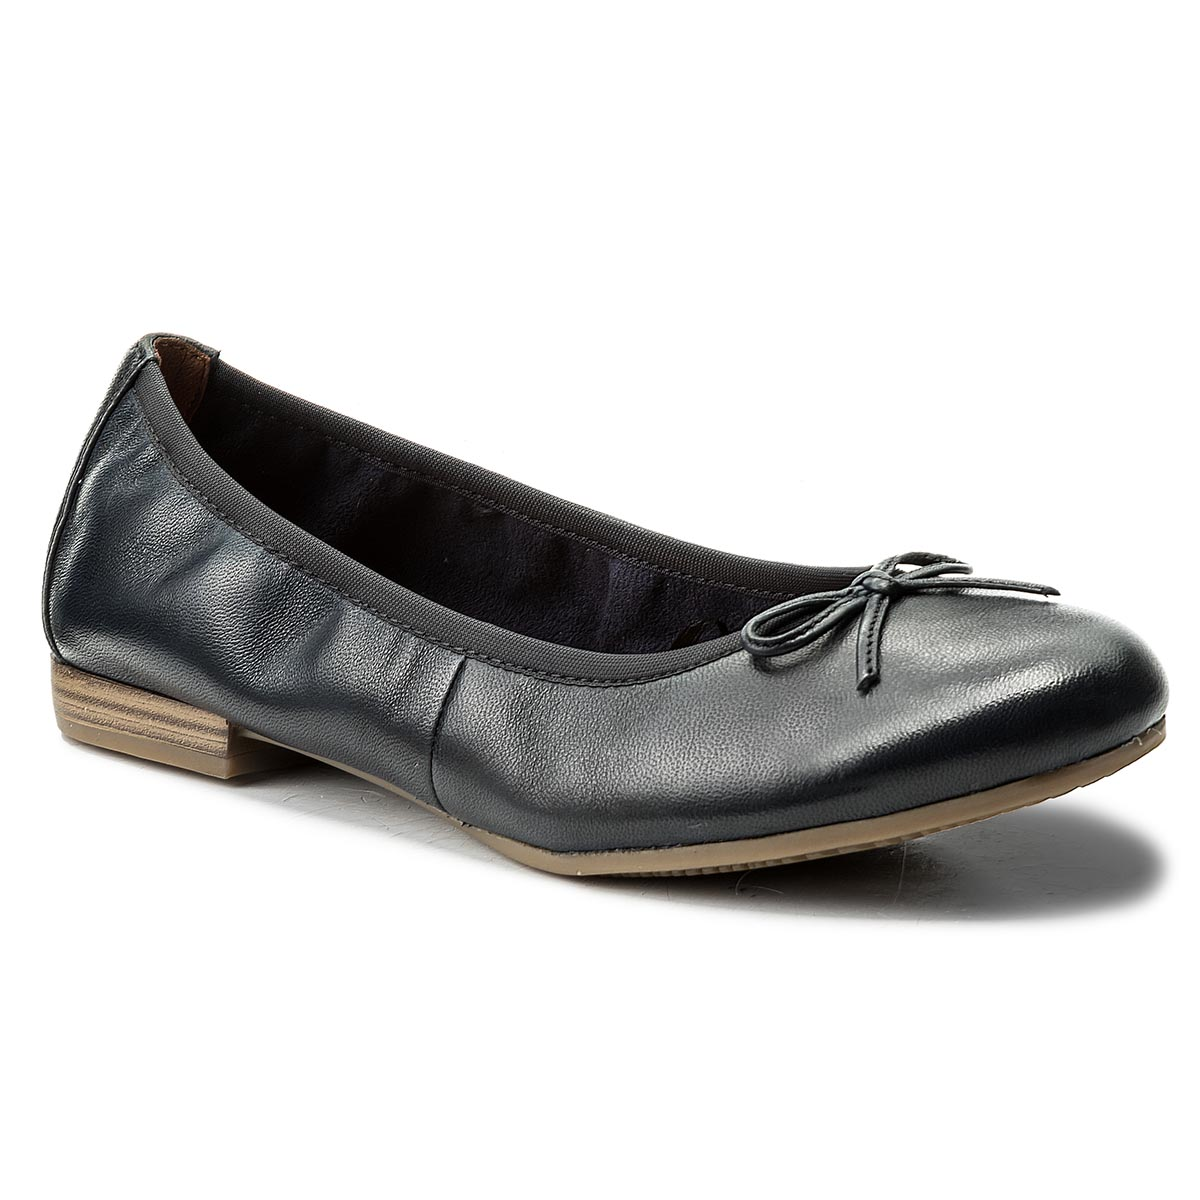 Baleriny TAMARIS - 1-22116-20 Navy Leather 848